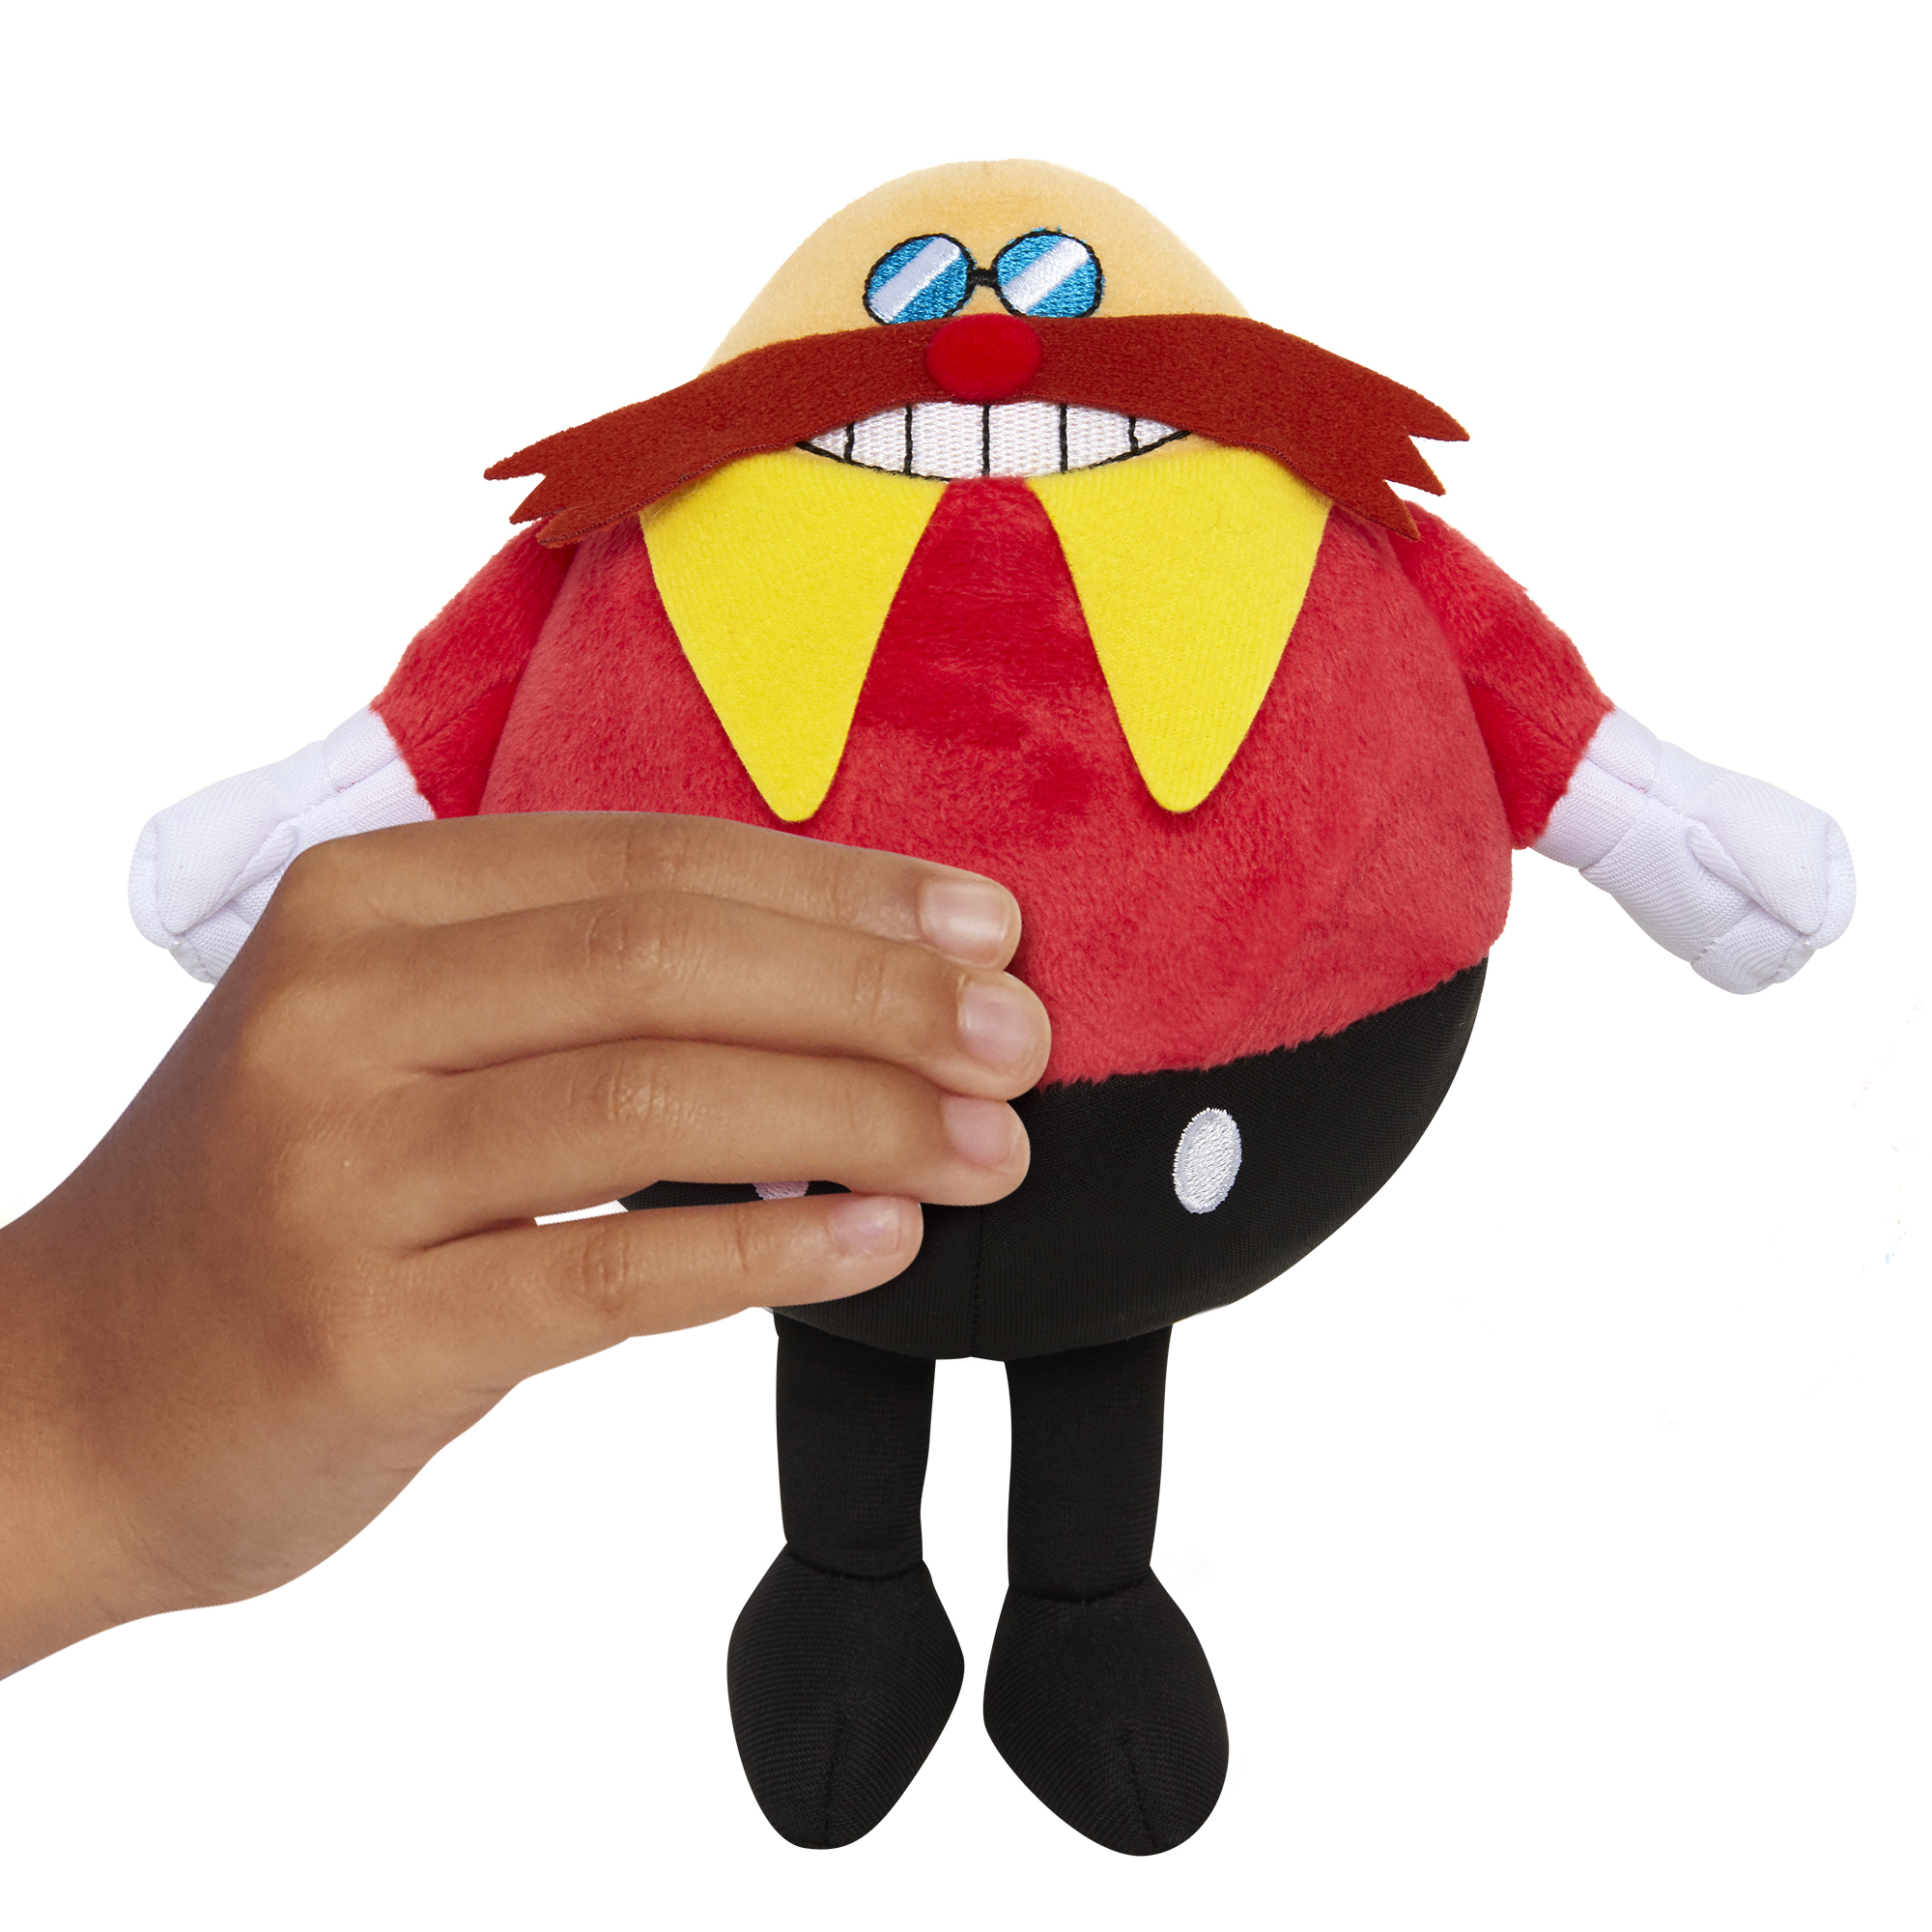 Sonic the Hedgehog - 7in Basic Plush - Eggman